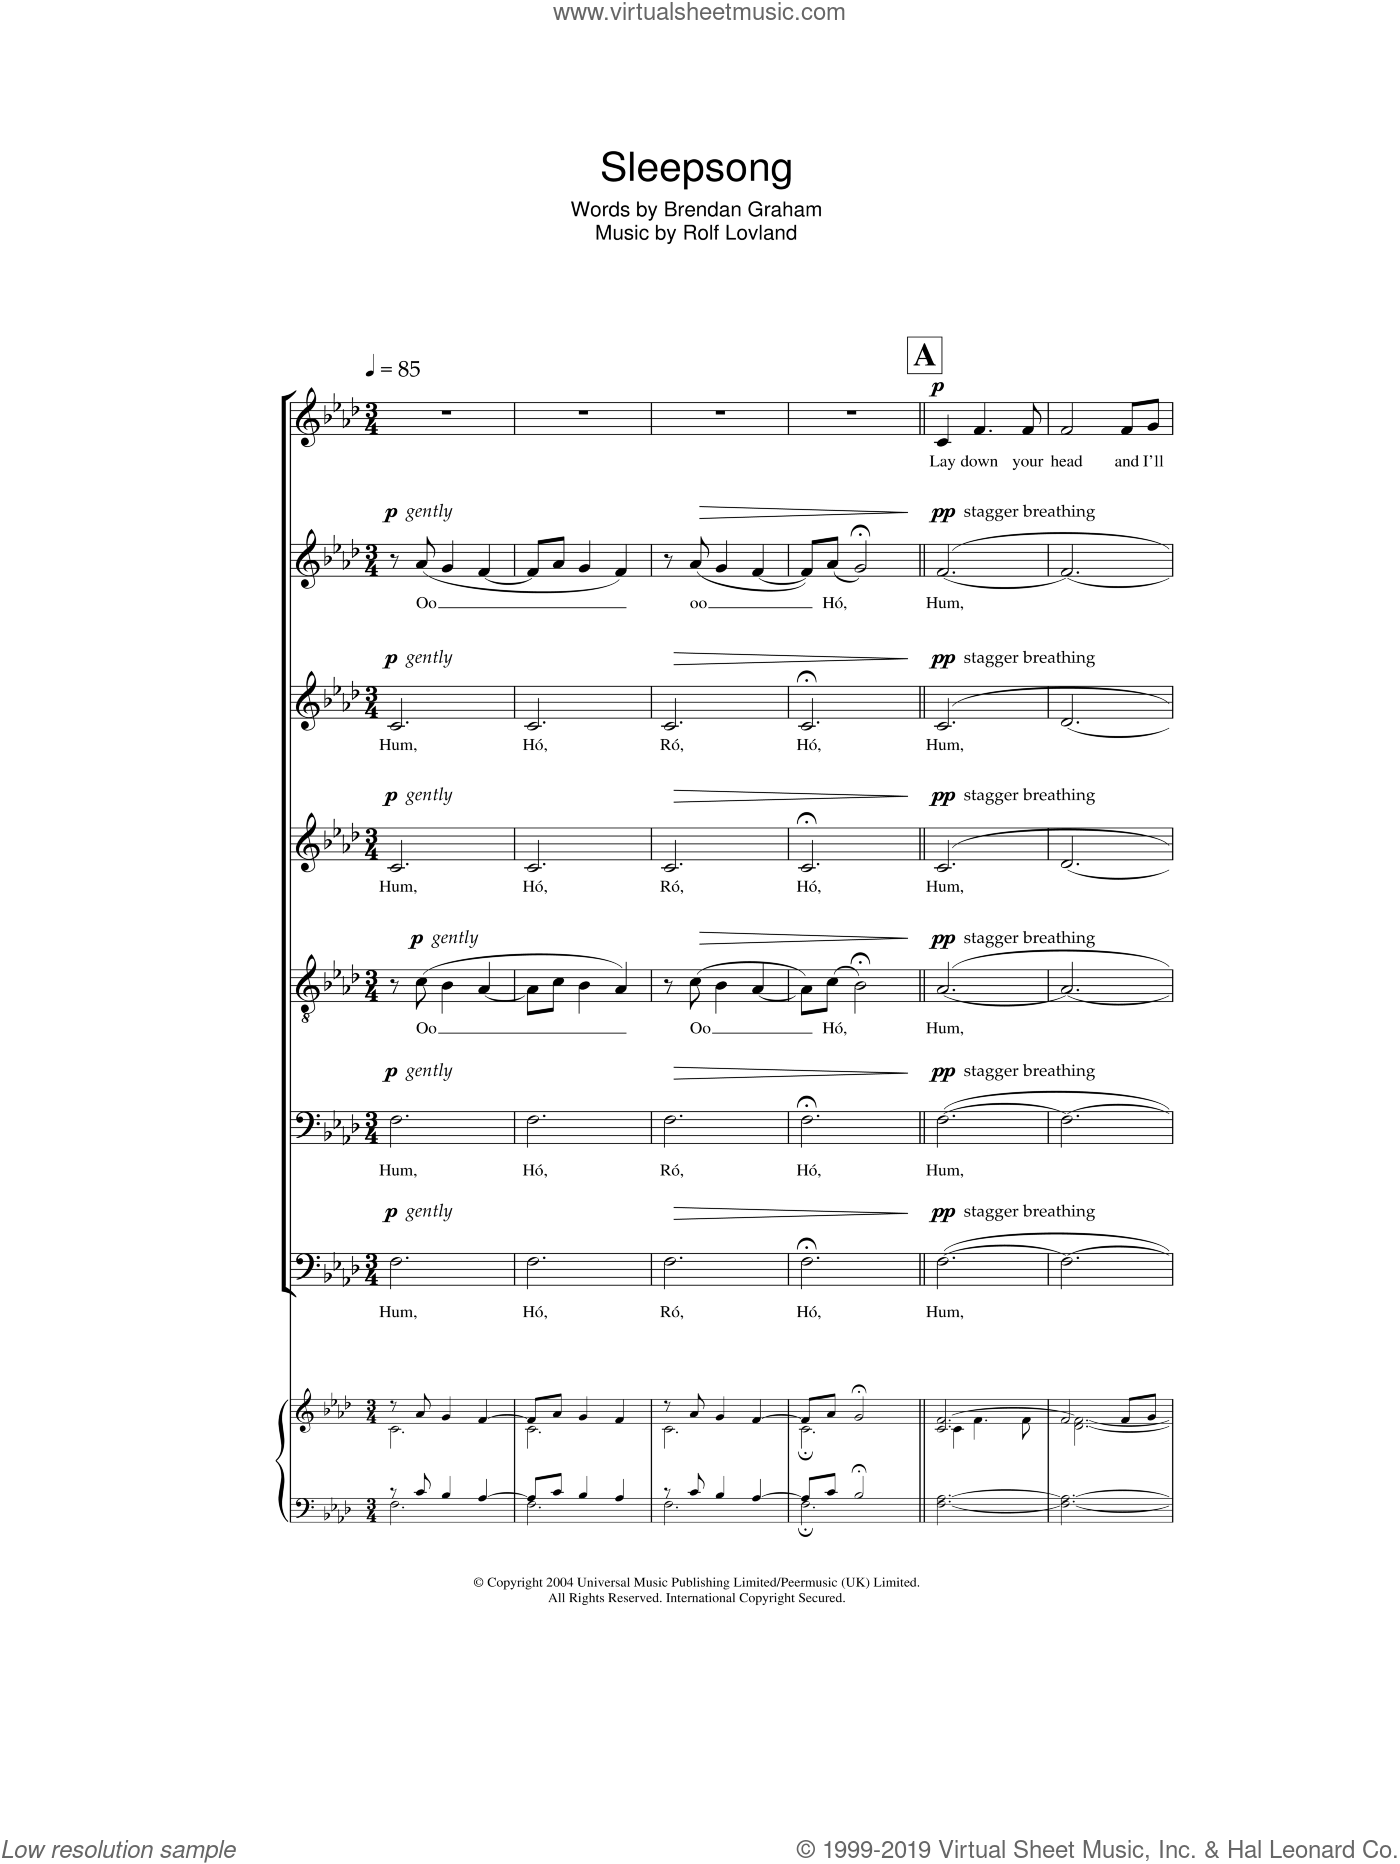 Sleepsong sheet music for choir by Secret Garden, Brendan Graham, Rolf Løvland and Rolf Lovland, intermediate skill level